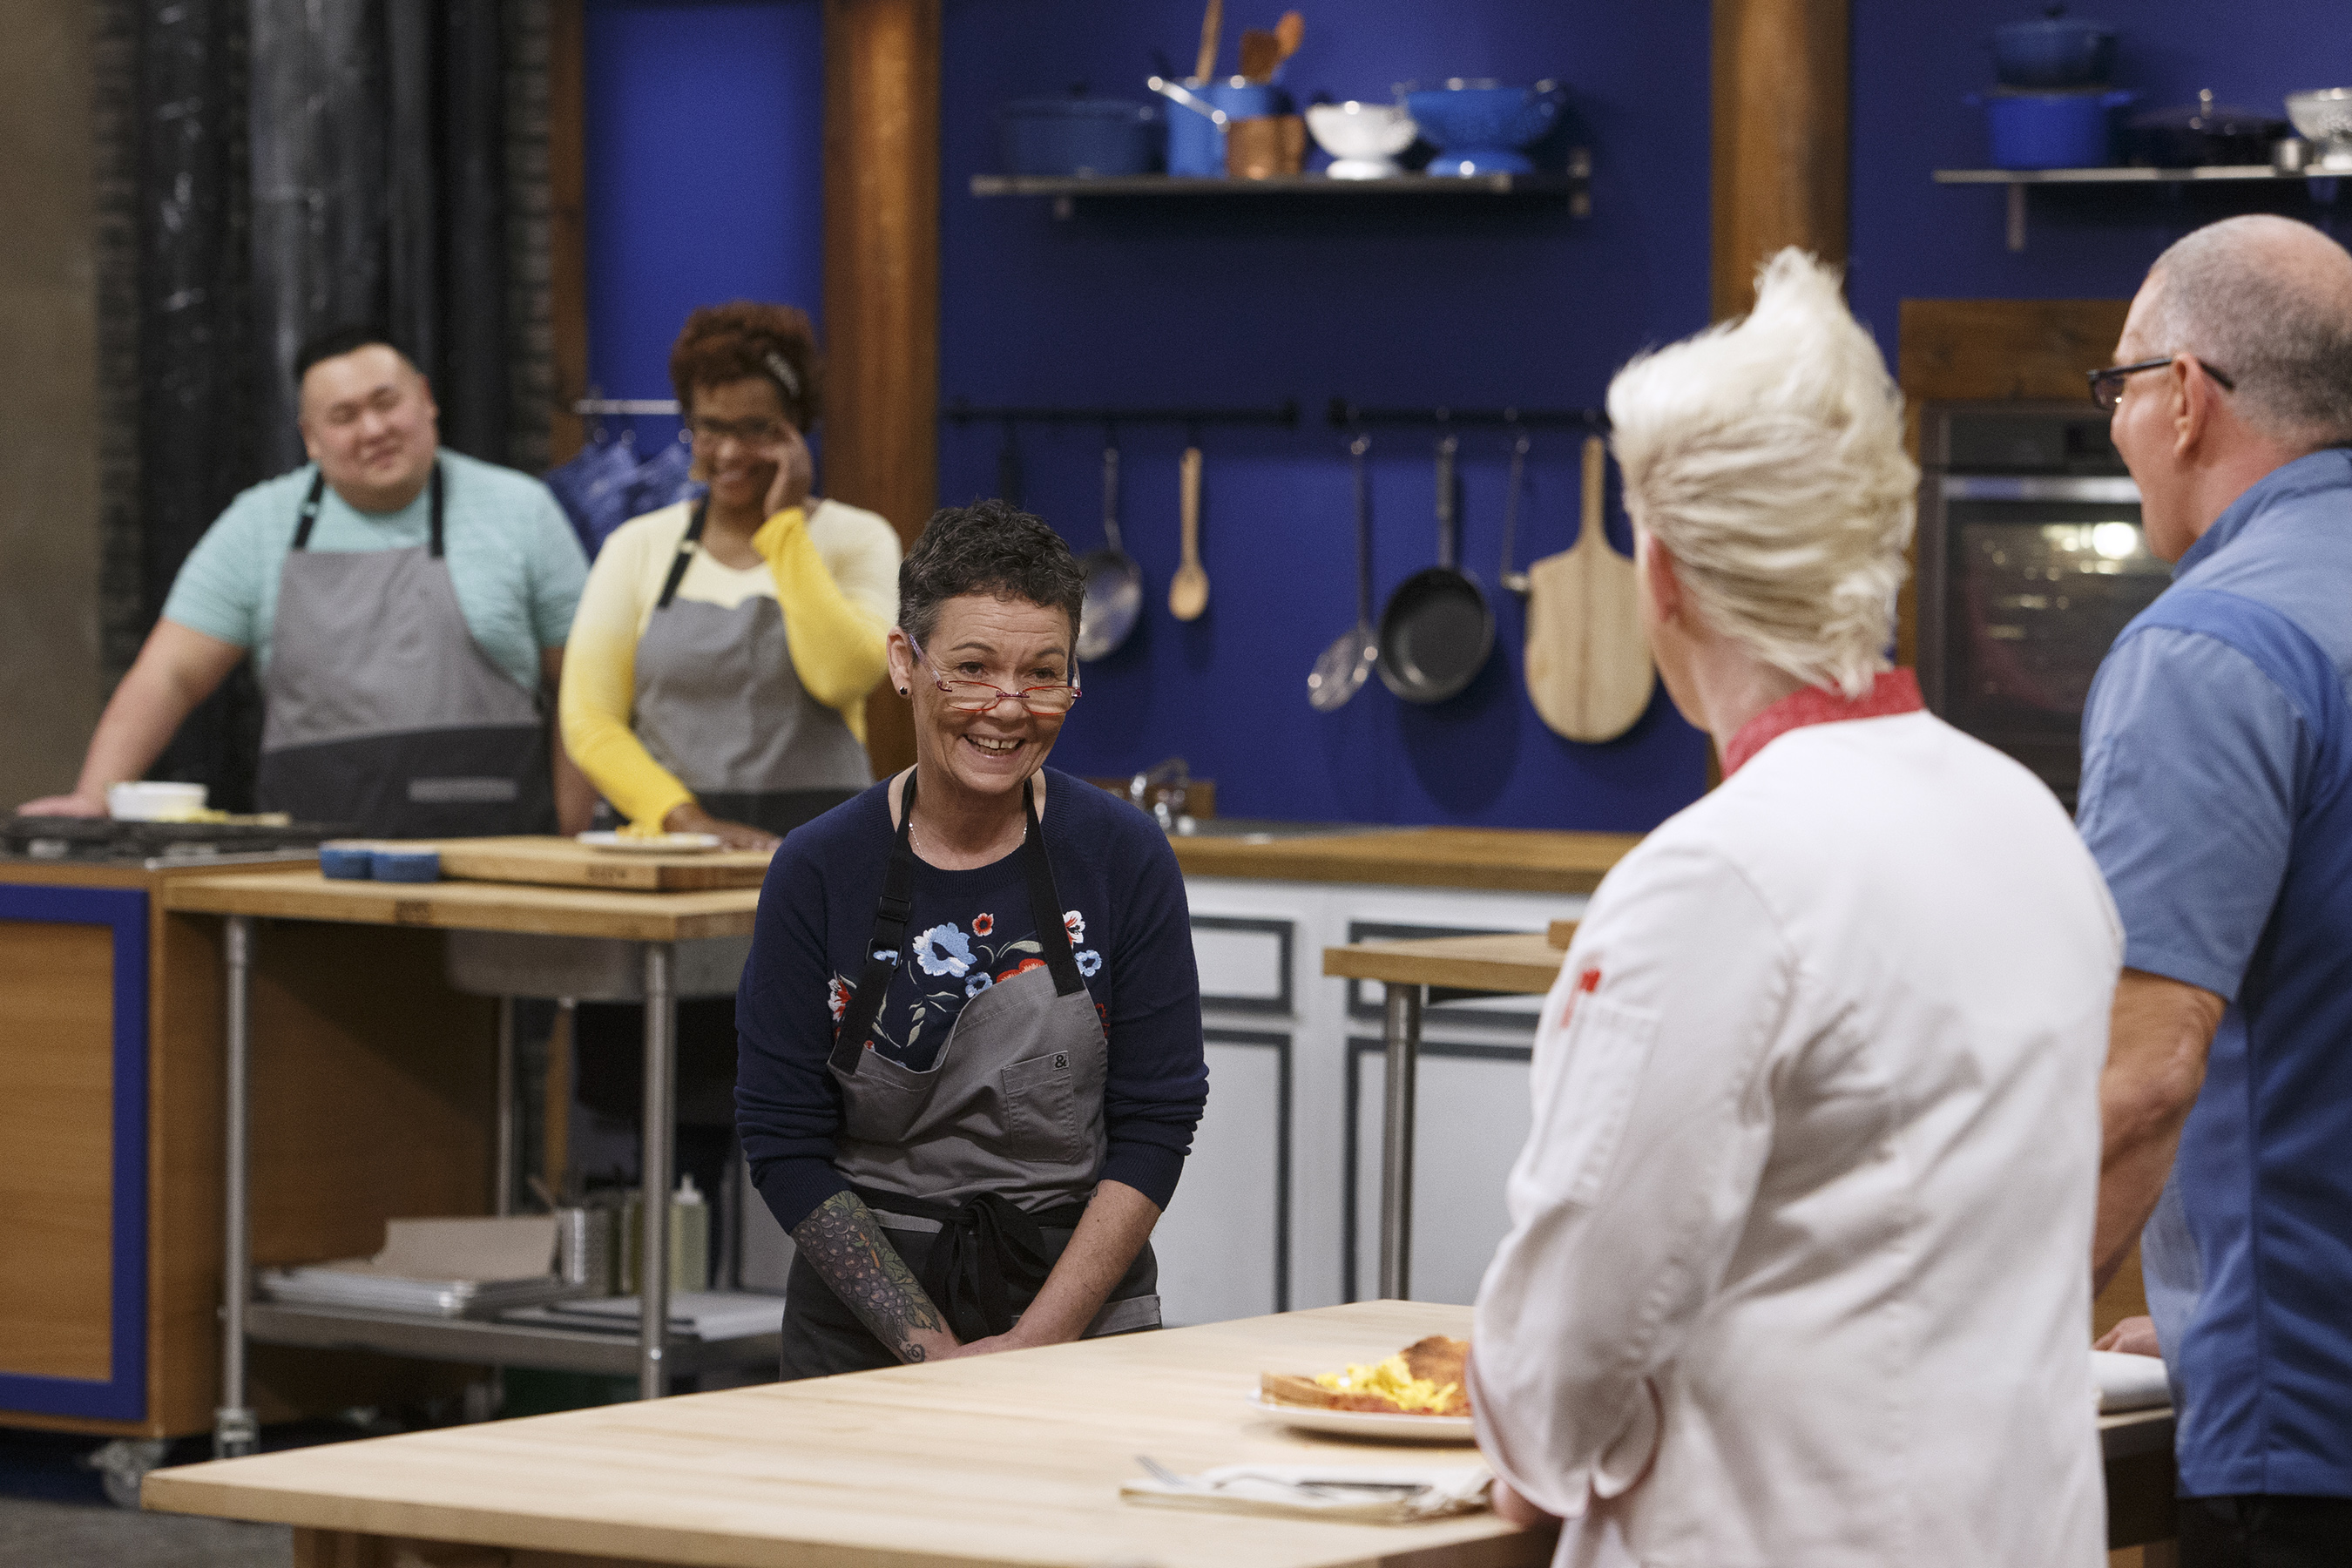 Robert Irvine and Anne Burrell evaluate recruit Linda Martin's dish on Food Network's Worst Cooks in America